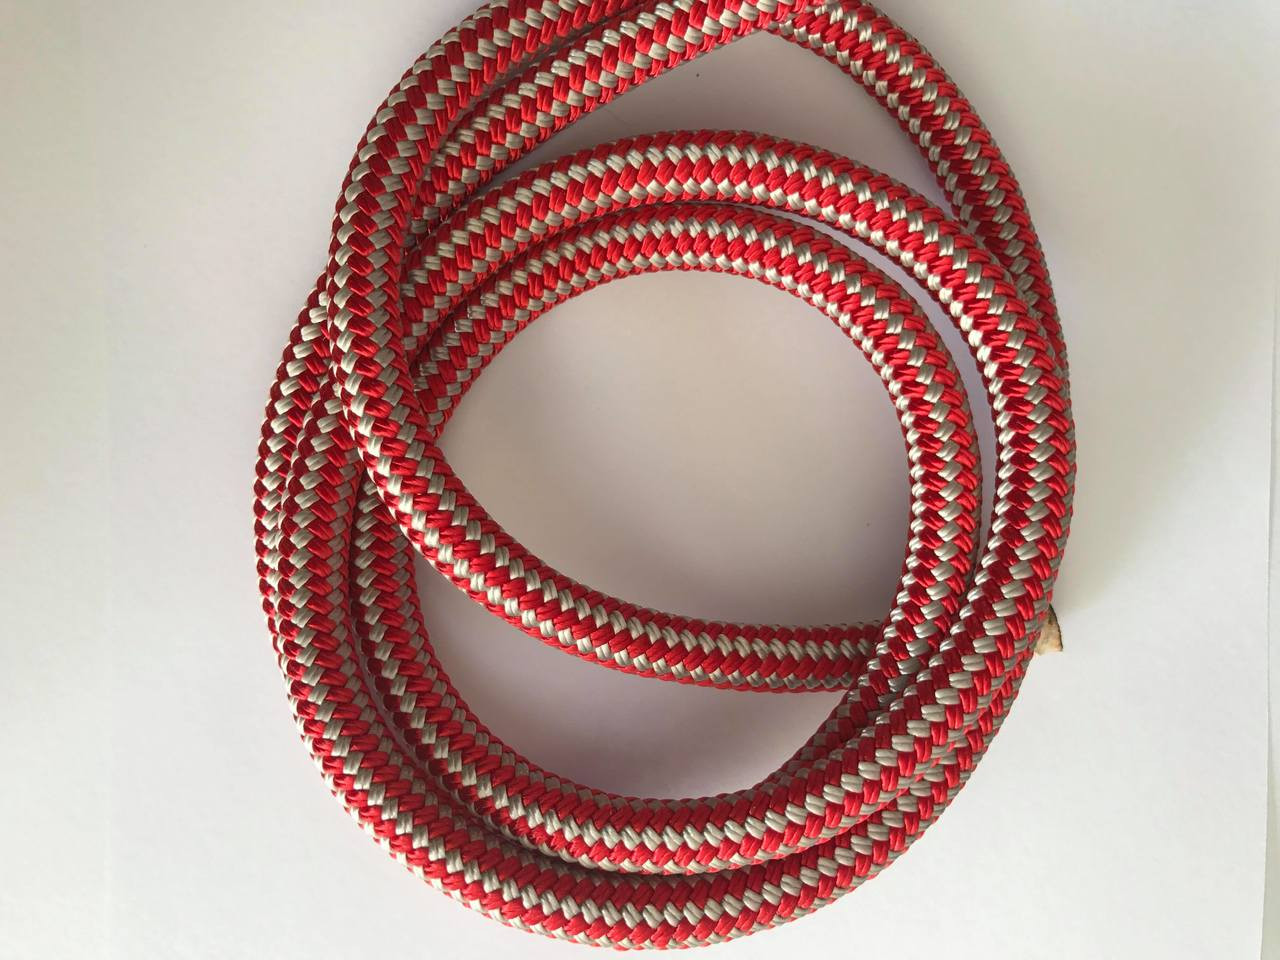 Rope - Spectra Red 10mm x 1metre